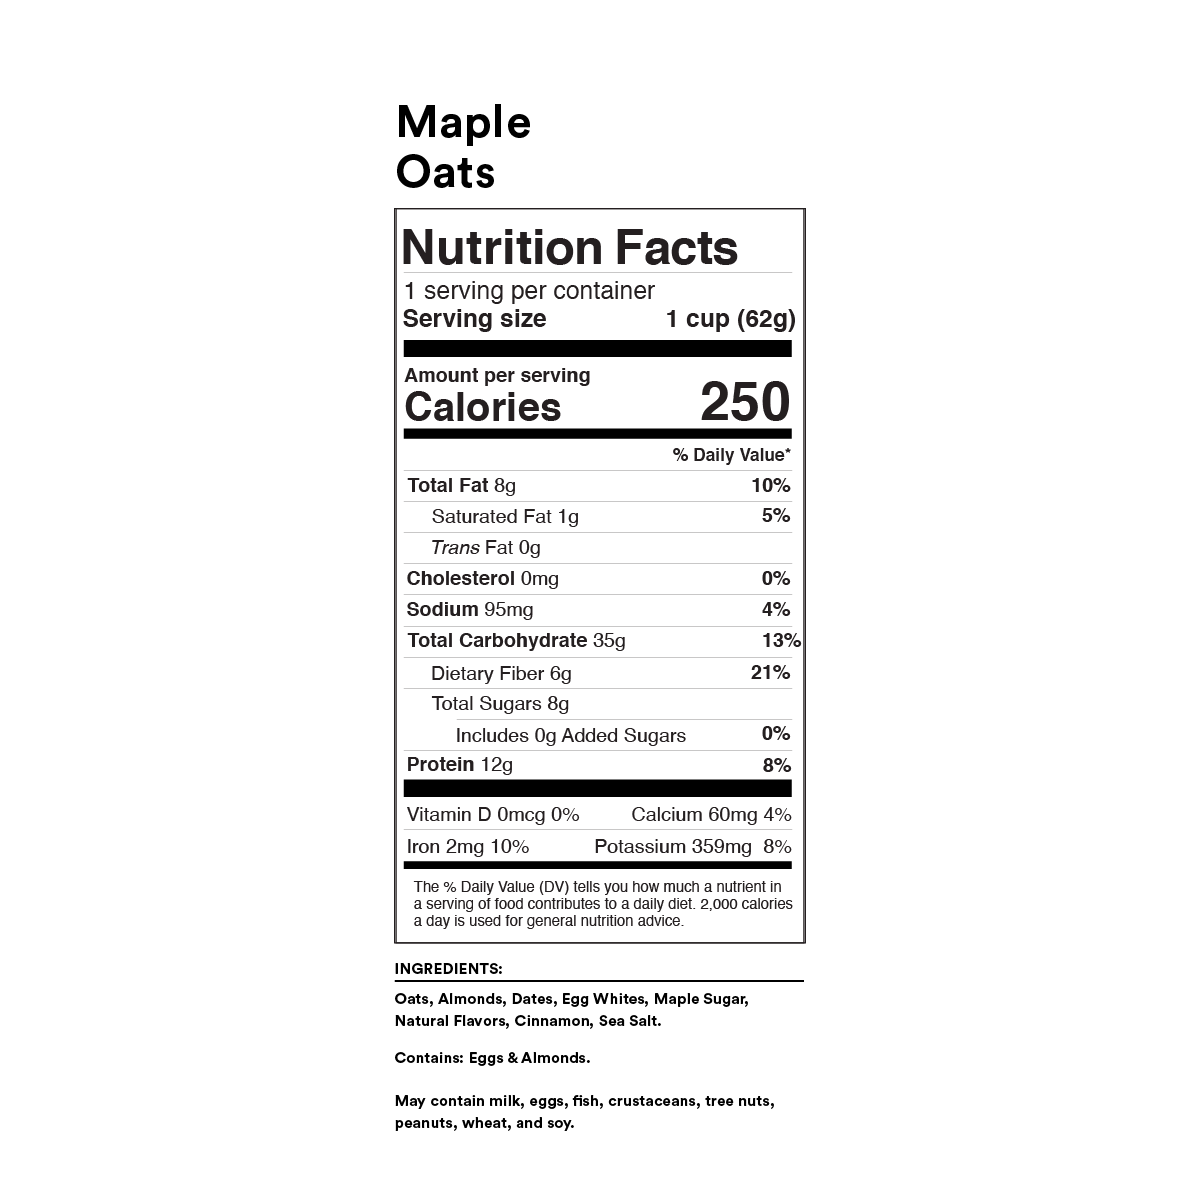 Maple Oats Nutrition Facts